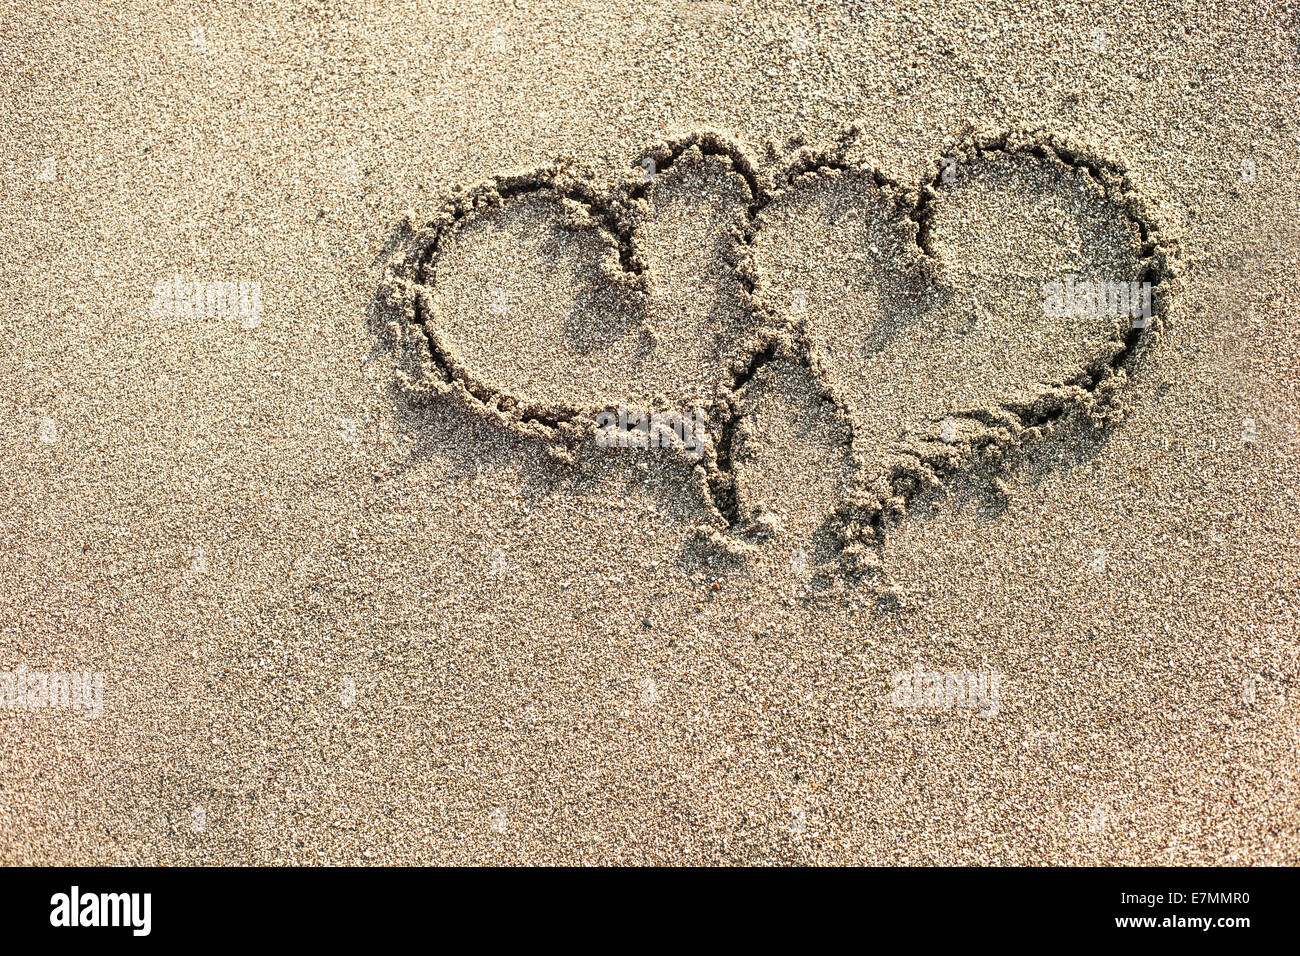 Two hearts written on the sand. - Stock Image